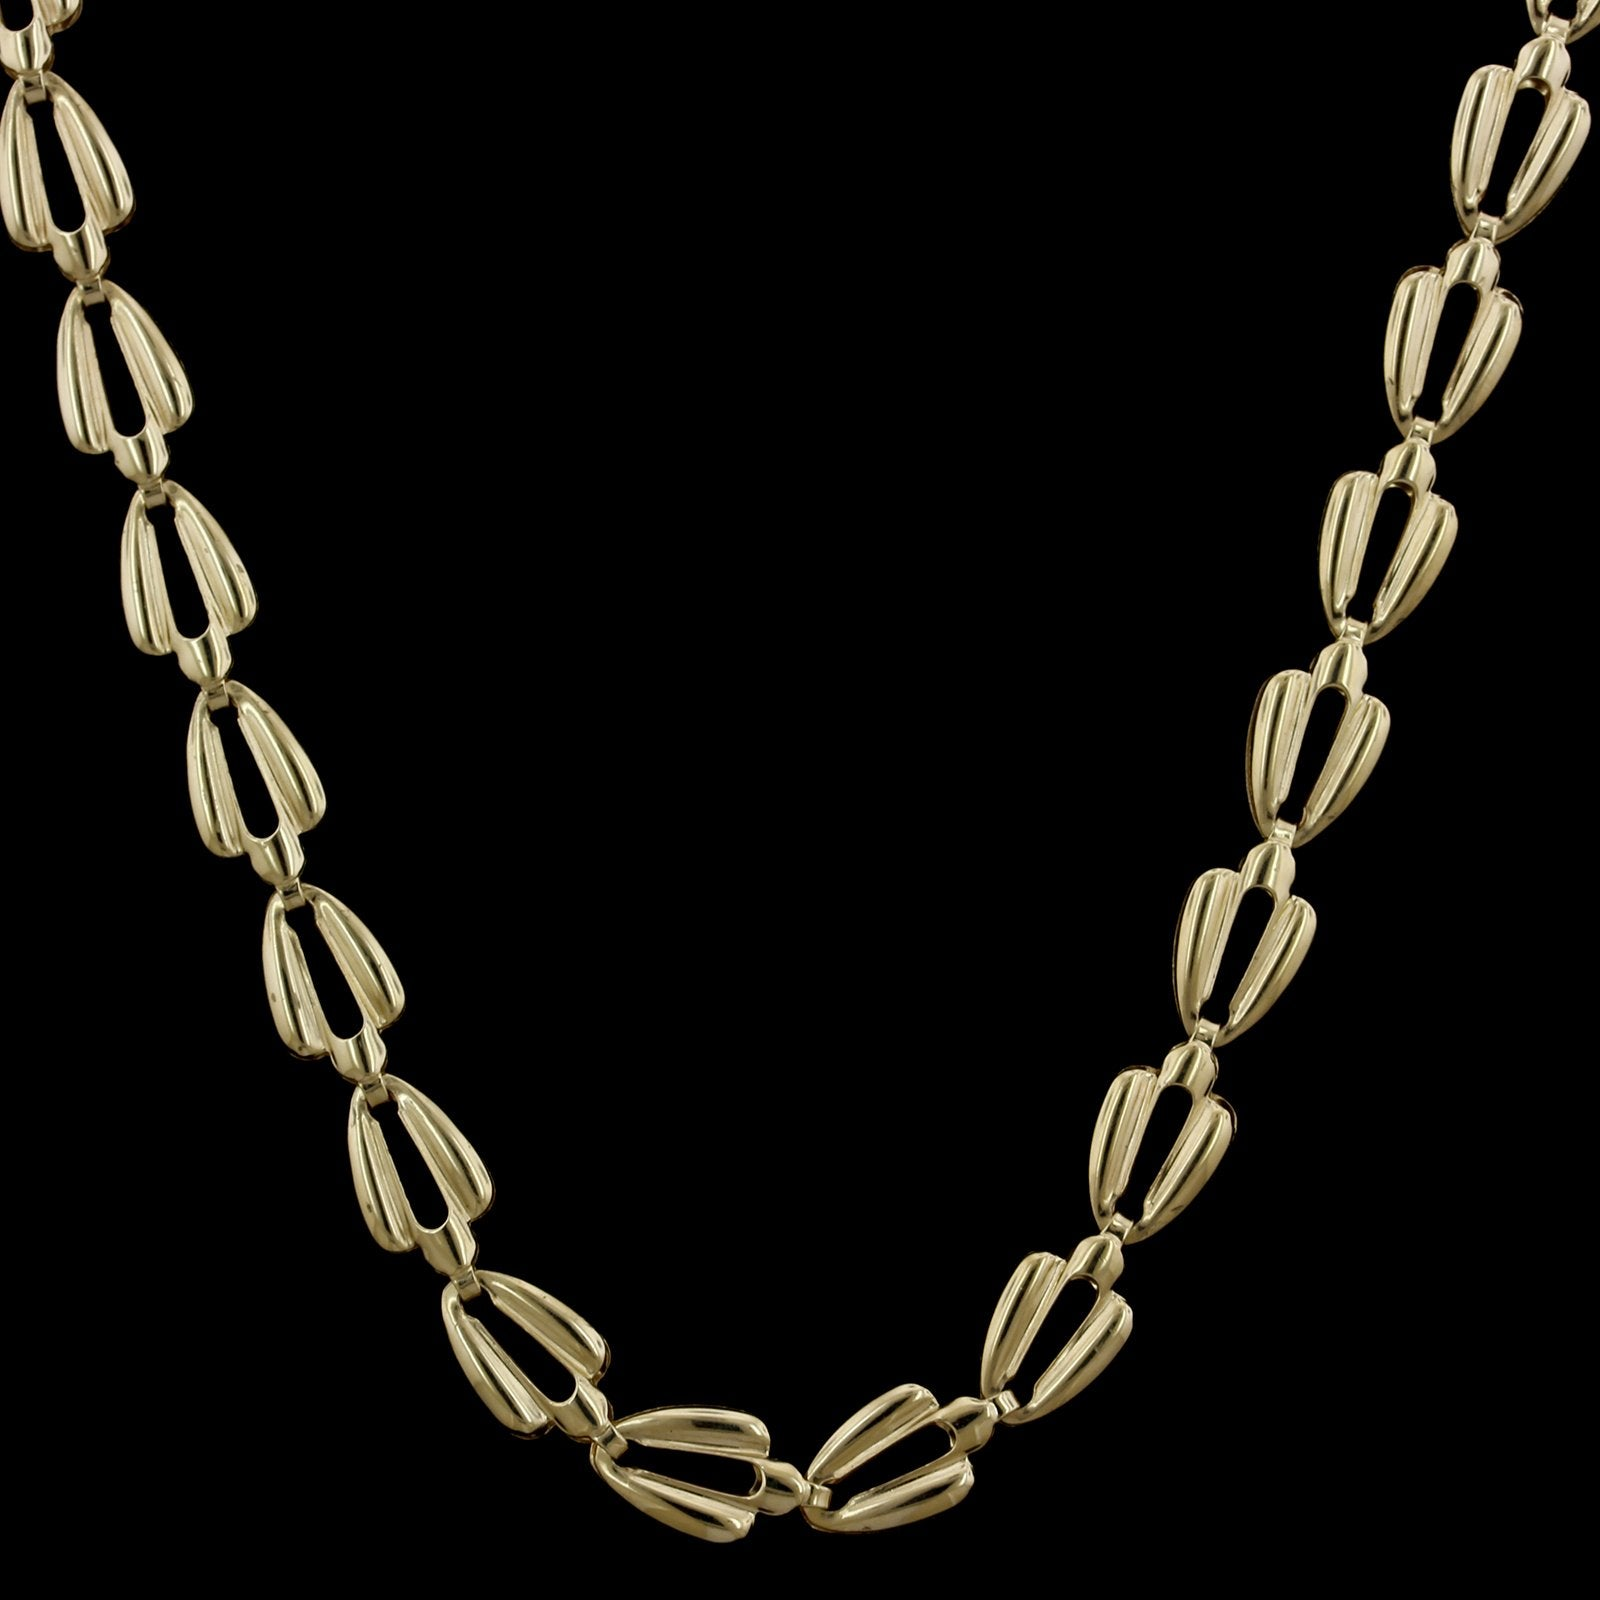 14K Yellow Gold Estate Fancy Link Chain